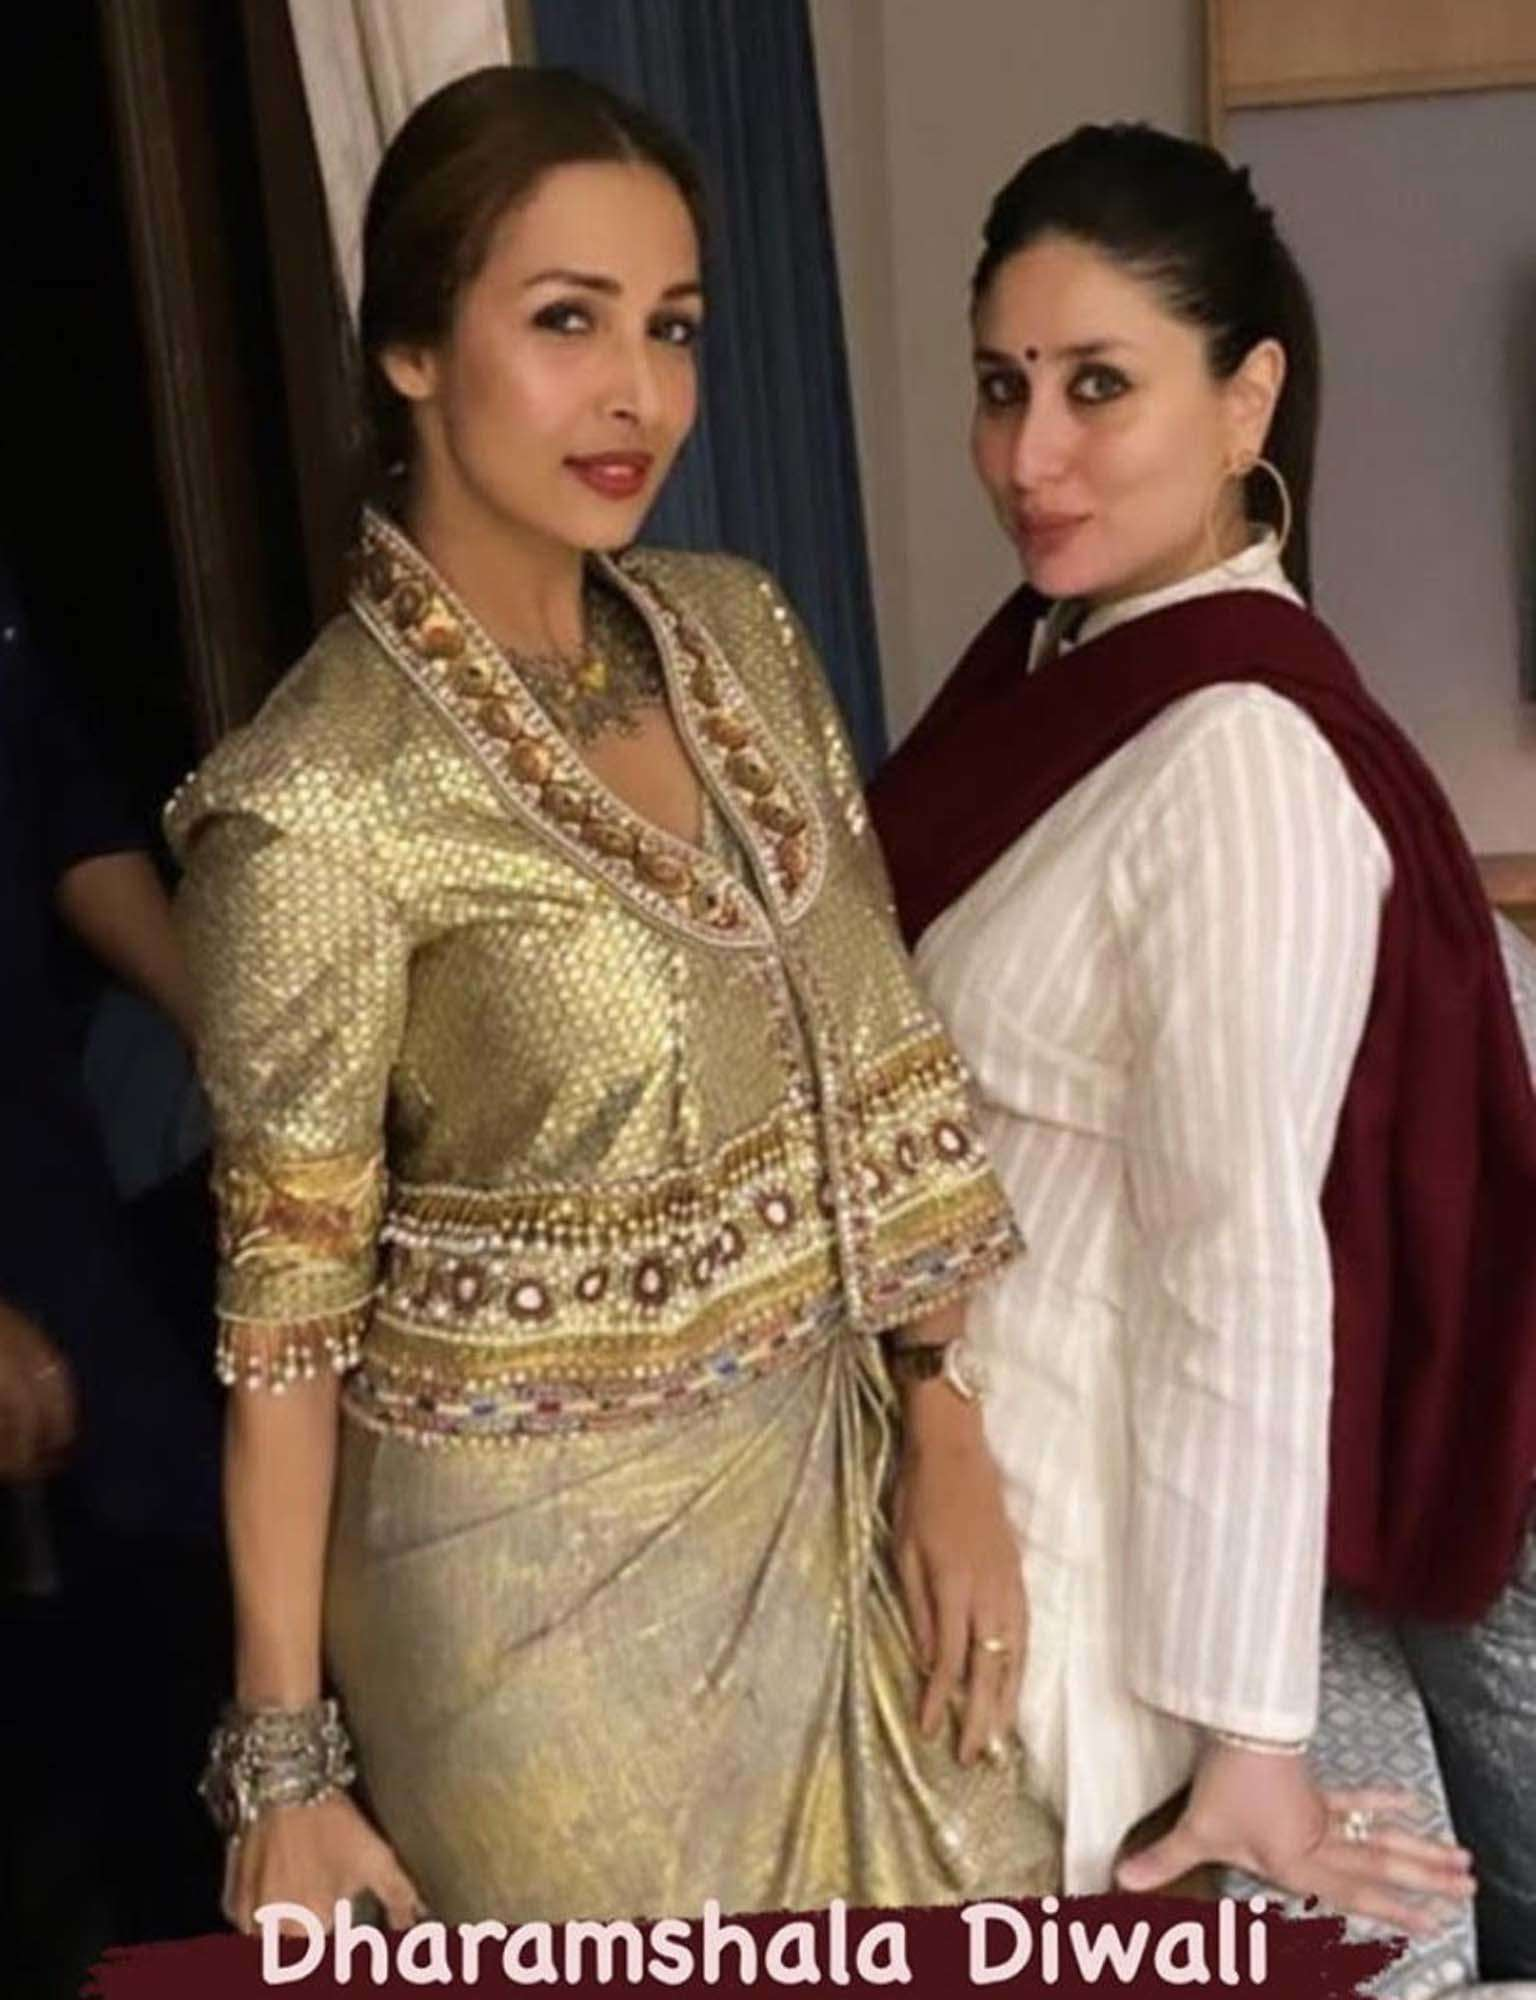 Malaika Arora joins Kareena Kapoor and Saif Ali Khan in Dharamshala for Diwali